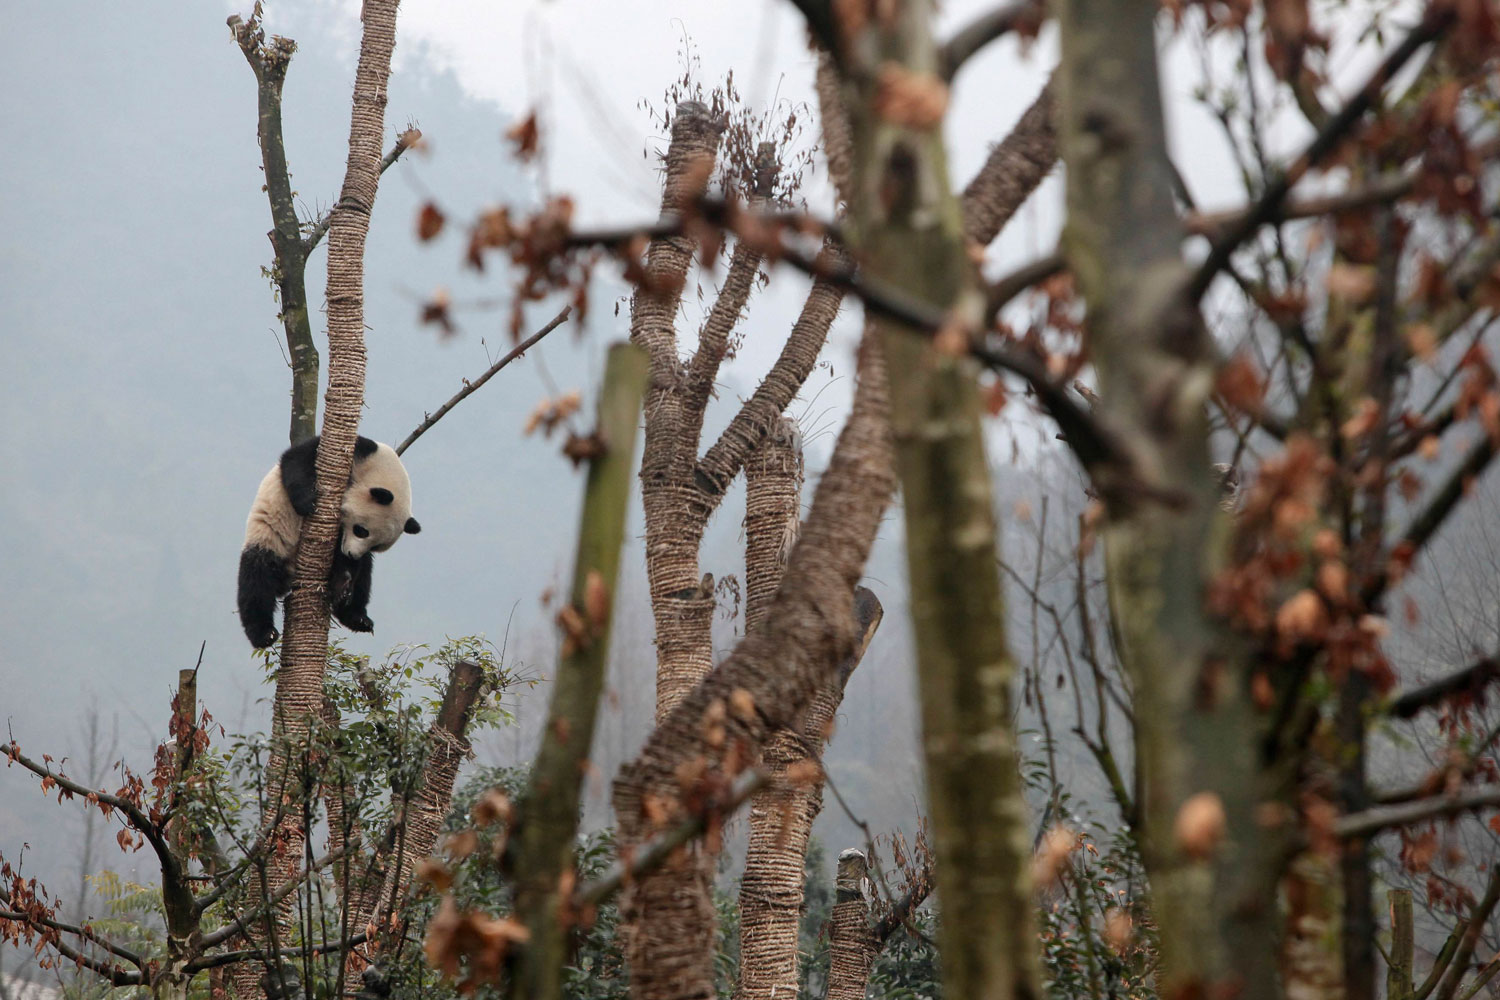 January 11, 2012. A giant panda sits in a tree at a panda breeding center in Dujiangyan, Sichuan province. The giant panda is among six young giant pandas which were bred in captivity and were released as a group of  pioneers  into an enclosed forest in Sichuan province. The release is the first step of a project aiming to help the endangered species to adapt to the wild environment and eventually survive in the wild, Xinhua News Agency reported.